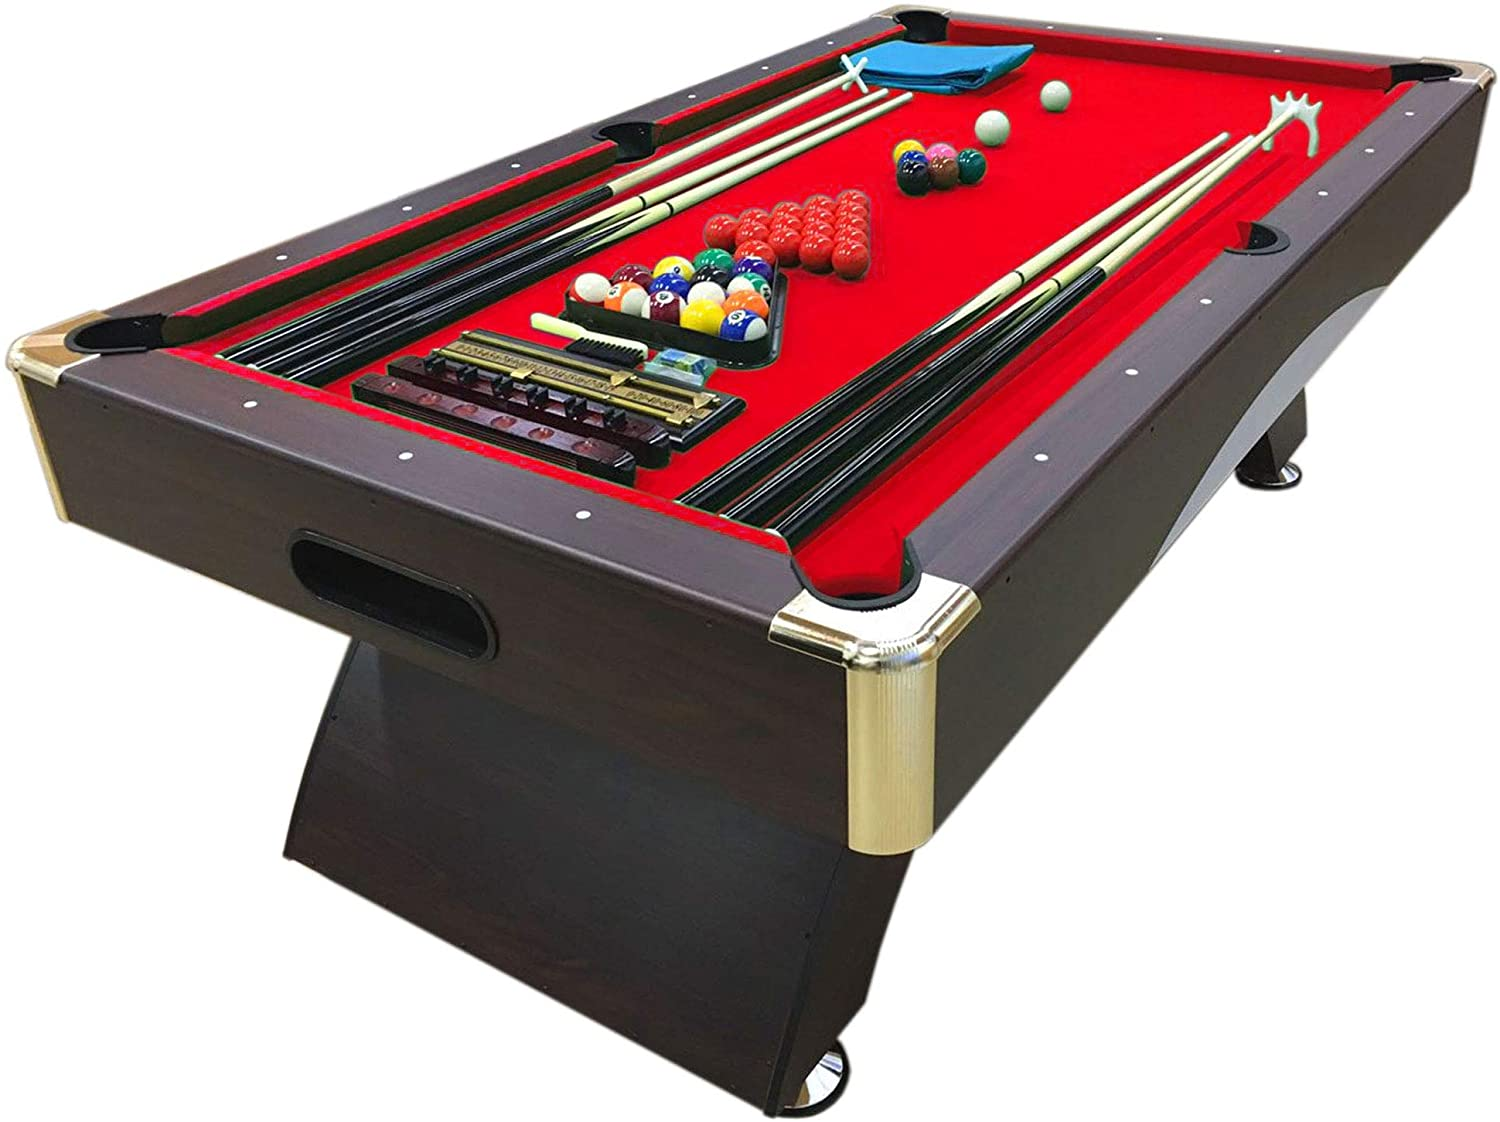 Mesa de billar juegos de billar pool 7 ft Modelo NAPOLEONE FULL OPTIONAL Carambola FULL Medición 188 X 96 cm Nuevo Embalado disponible: Amazon.es: Deportes y aire libre